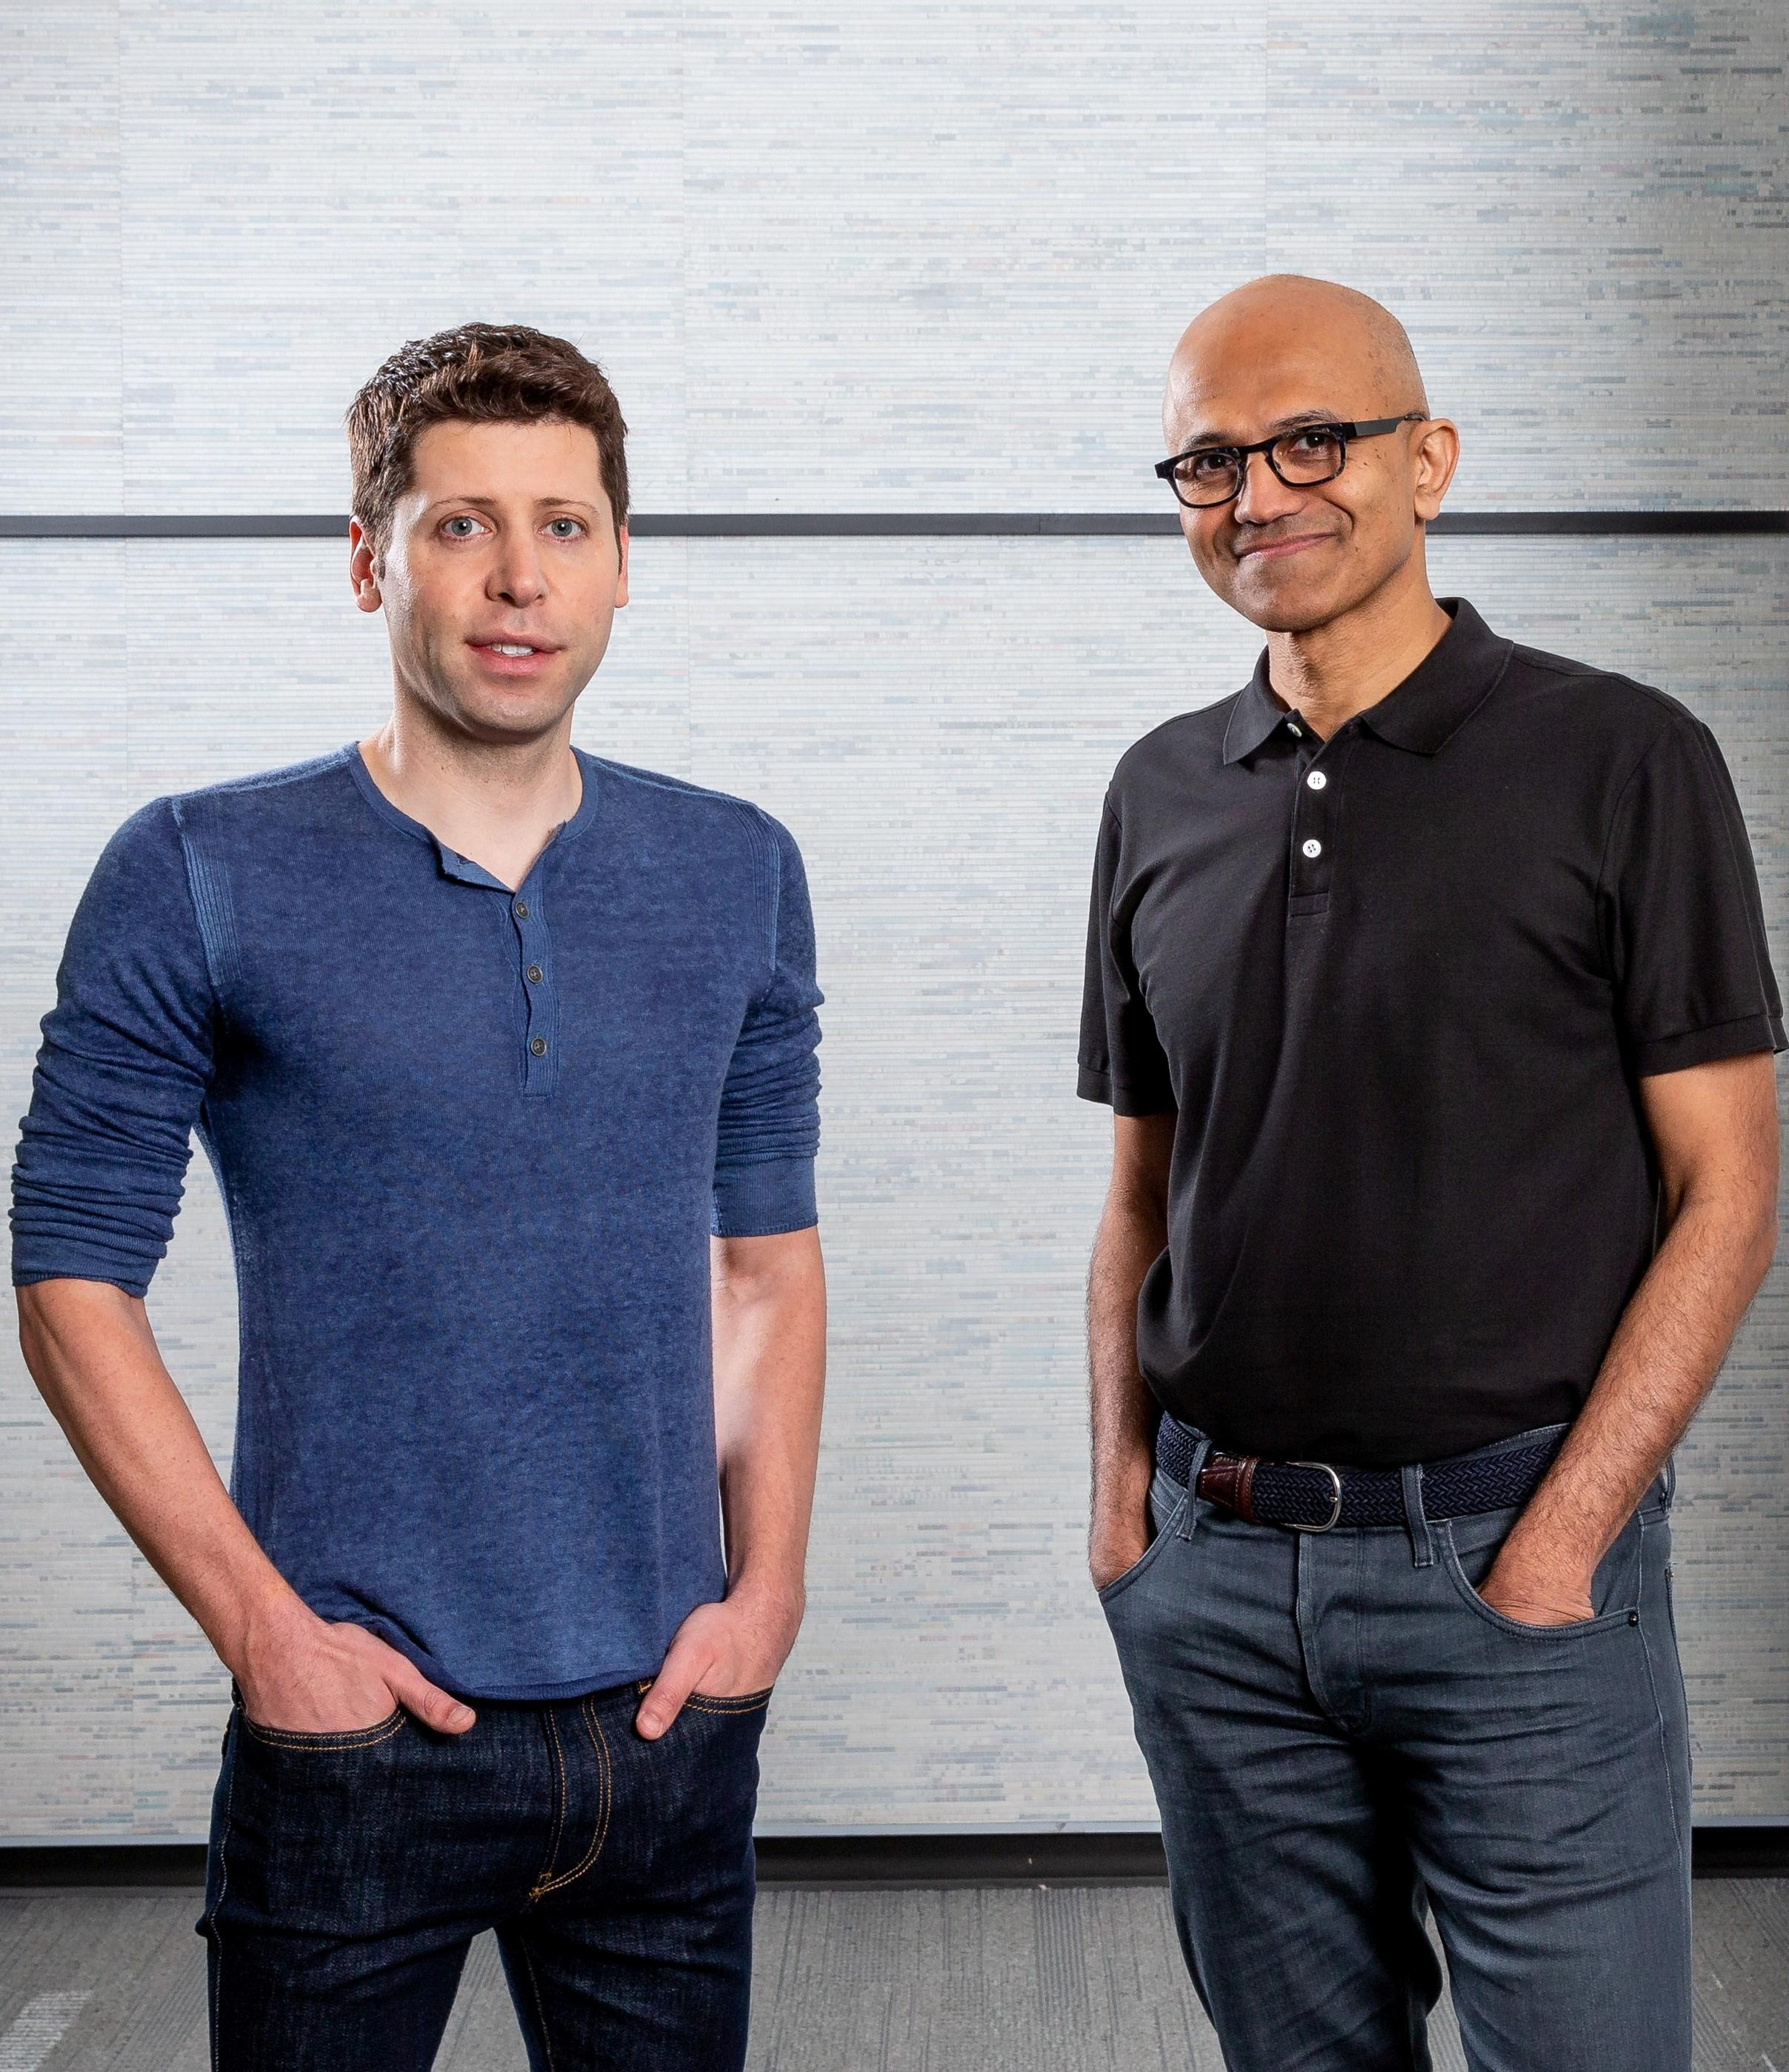 Microsoft to invest $1 billion in OpenAI